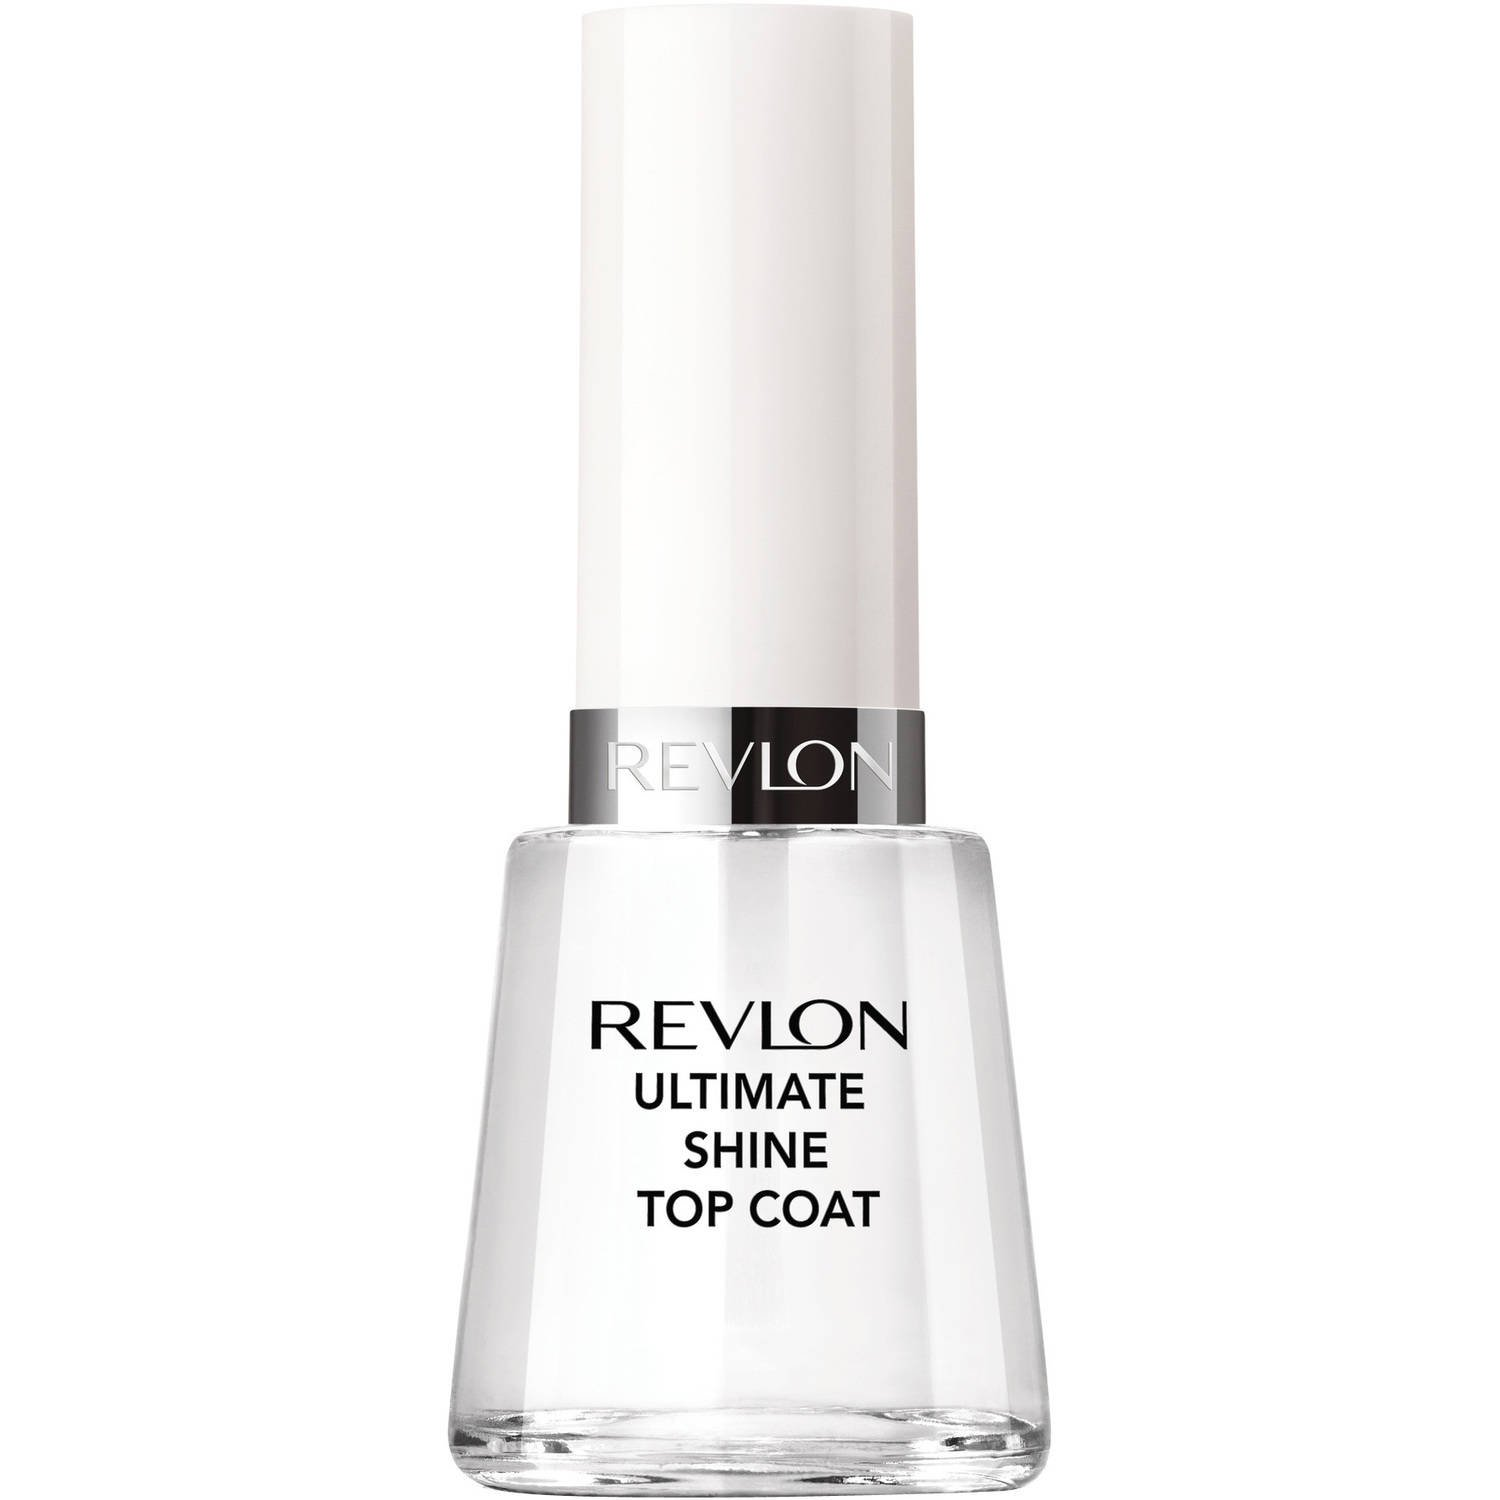 Revlon ultimate shine top coat, 0.5 fl oz